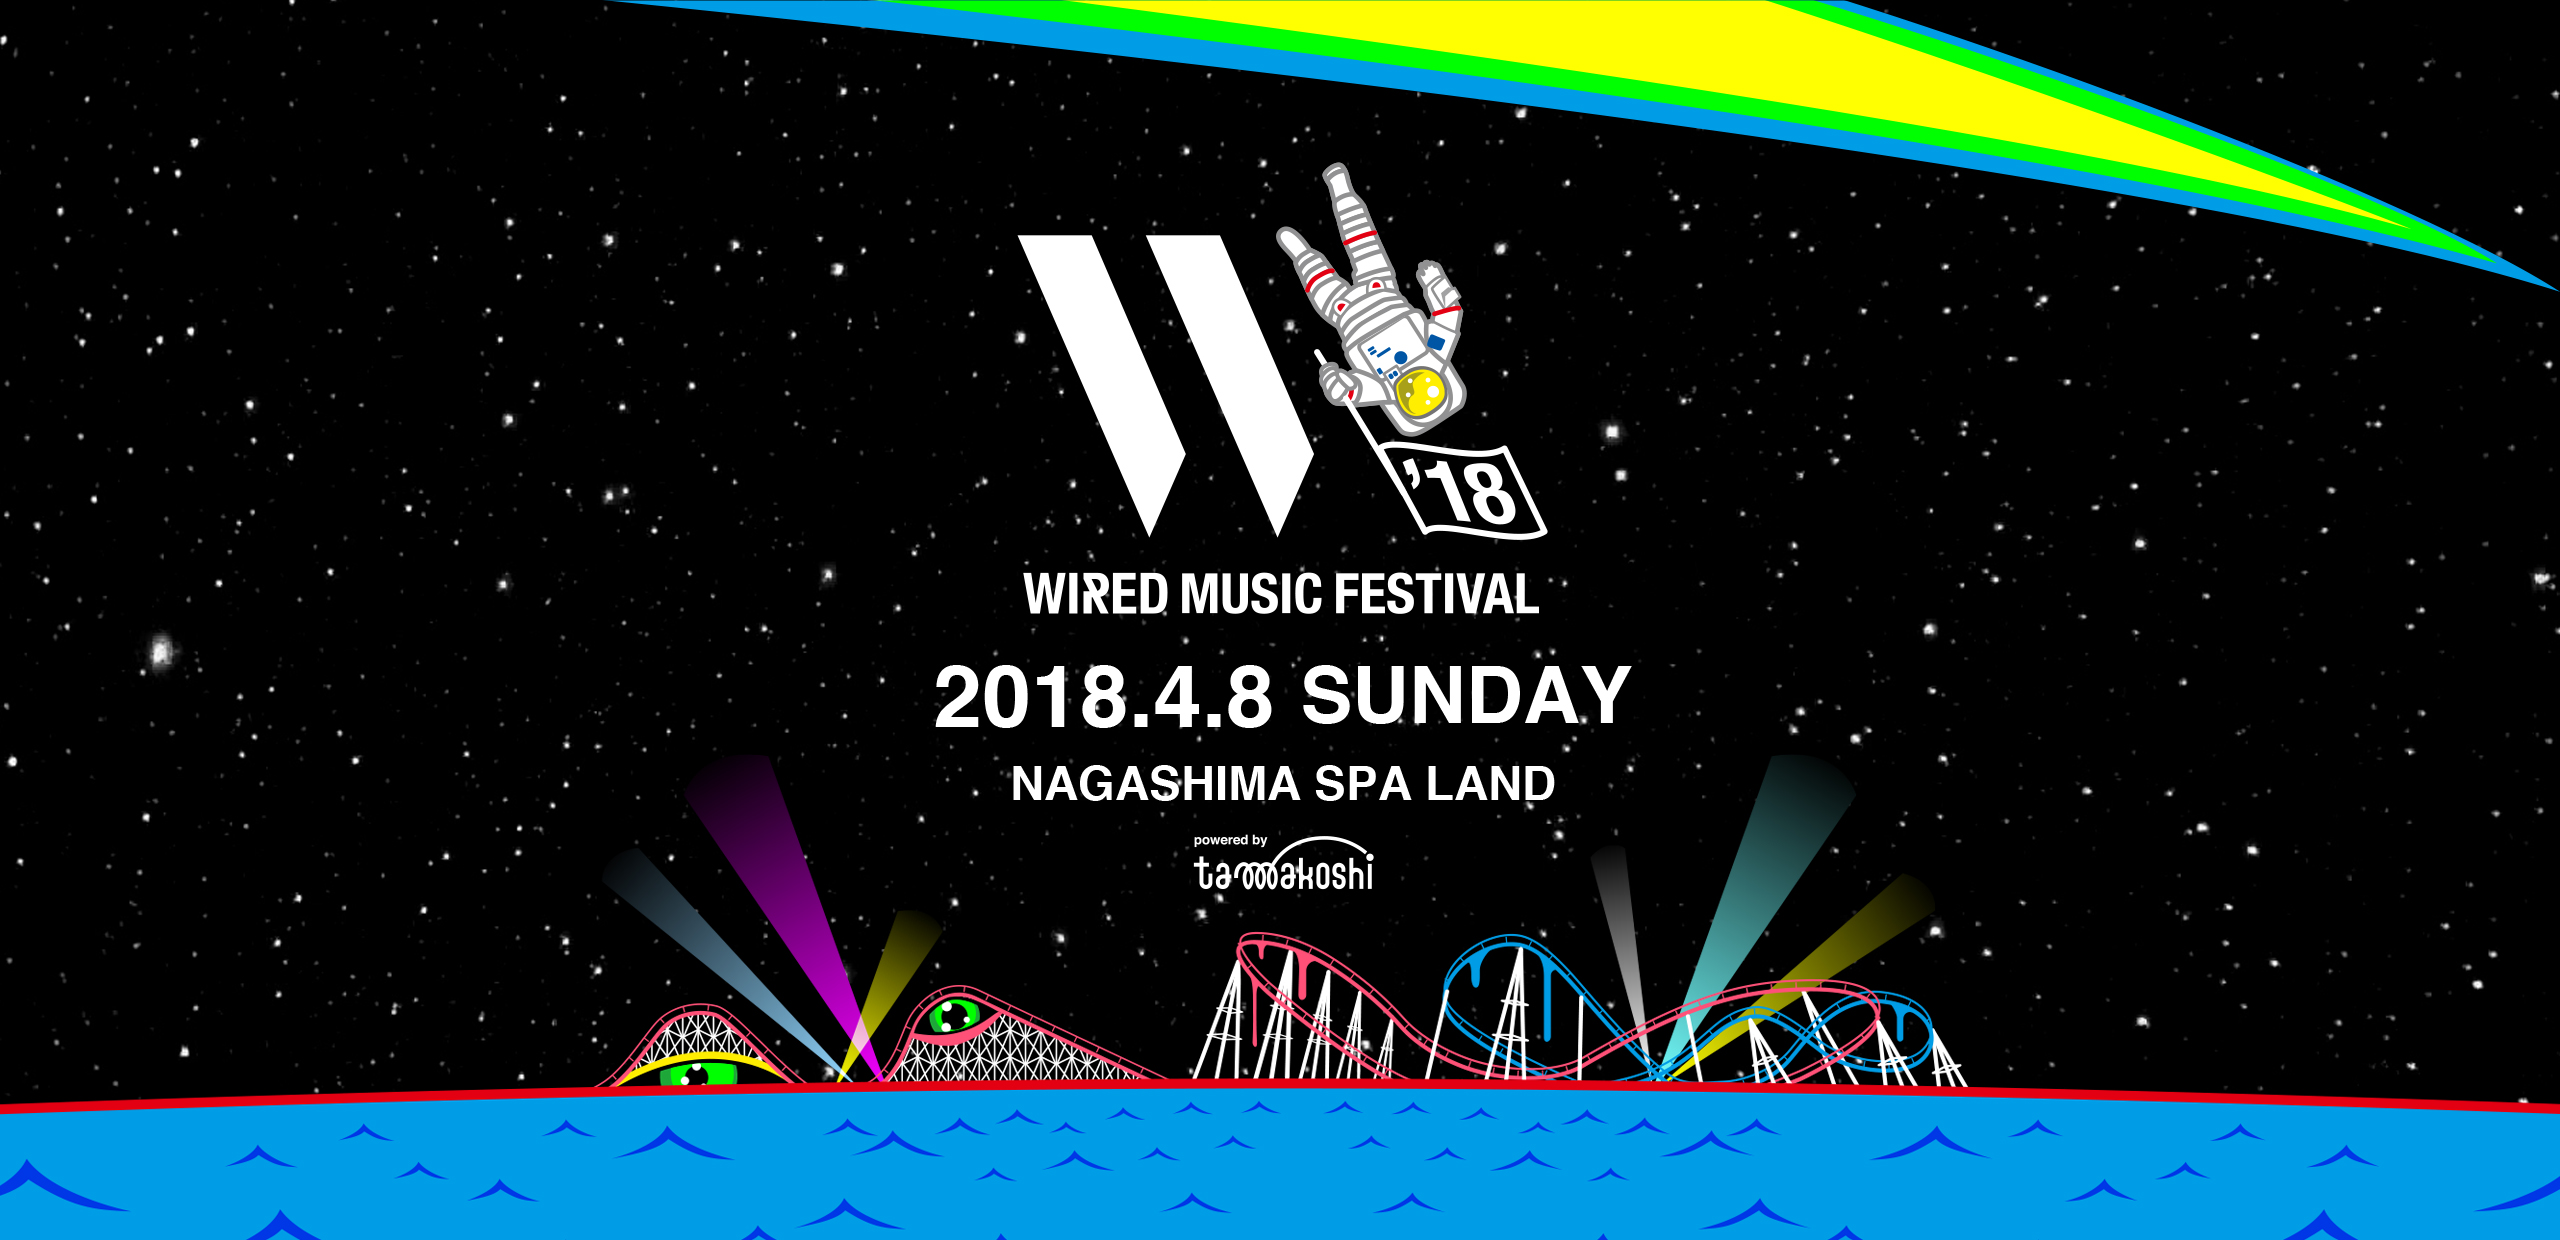 WIRED MUSIC FESTIVAL 2018